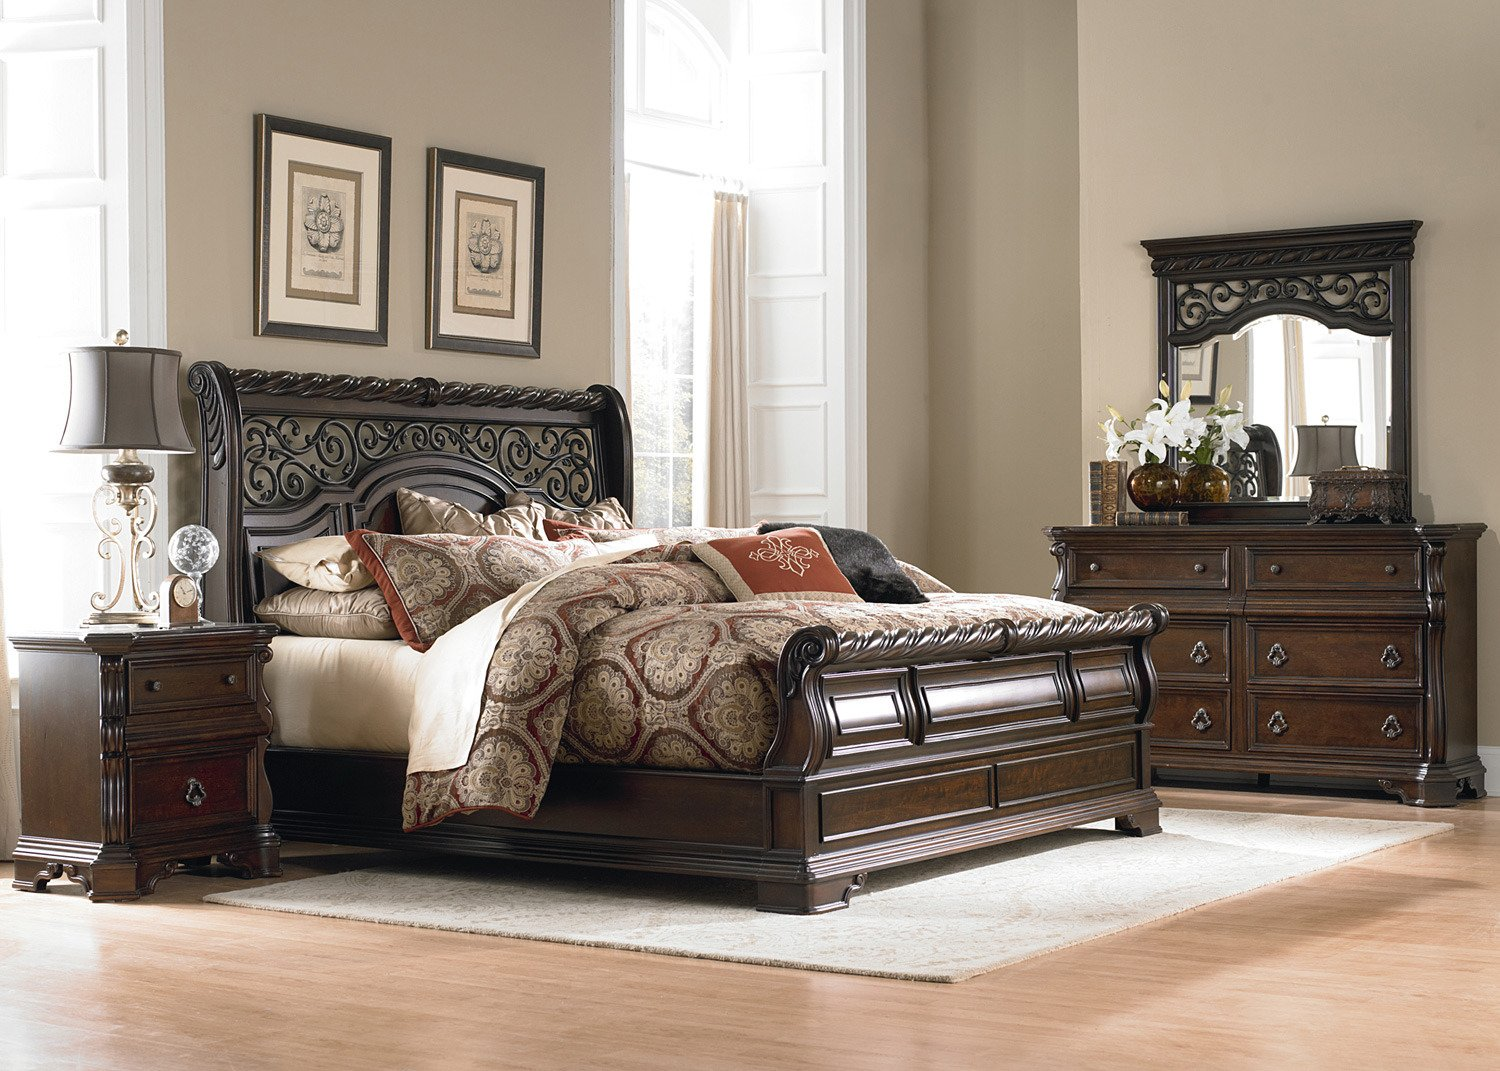 Amazon.com: Liberty Furniture Arbor Place Bedroom Queen Sleigh Bed,  Brownstone Finish: Kitchen U0026 Dining